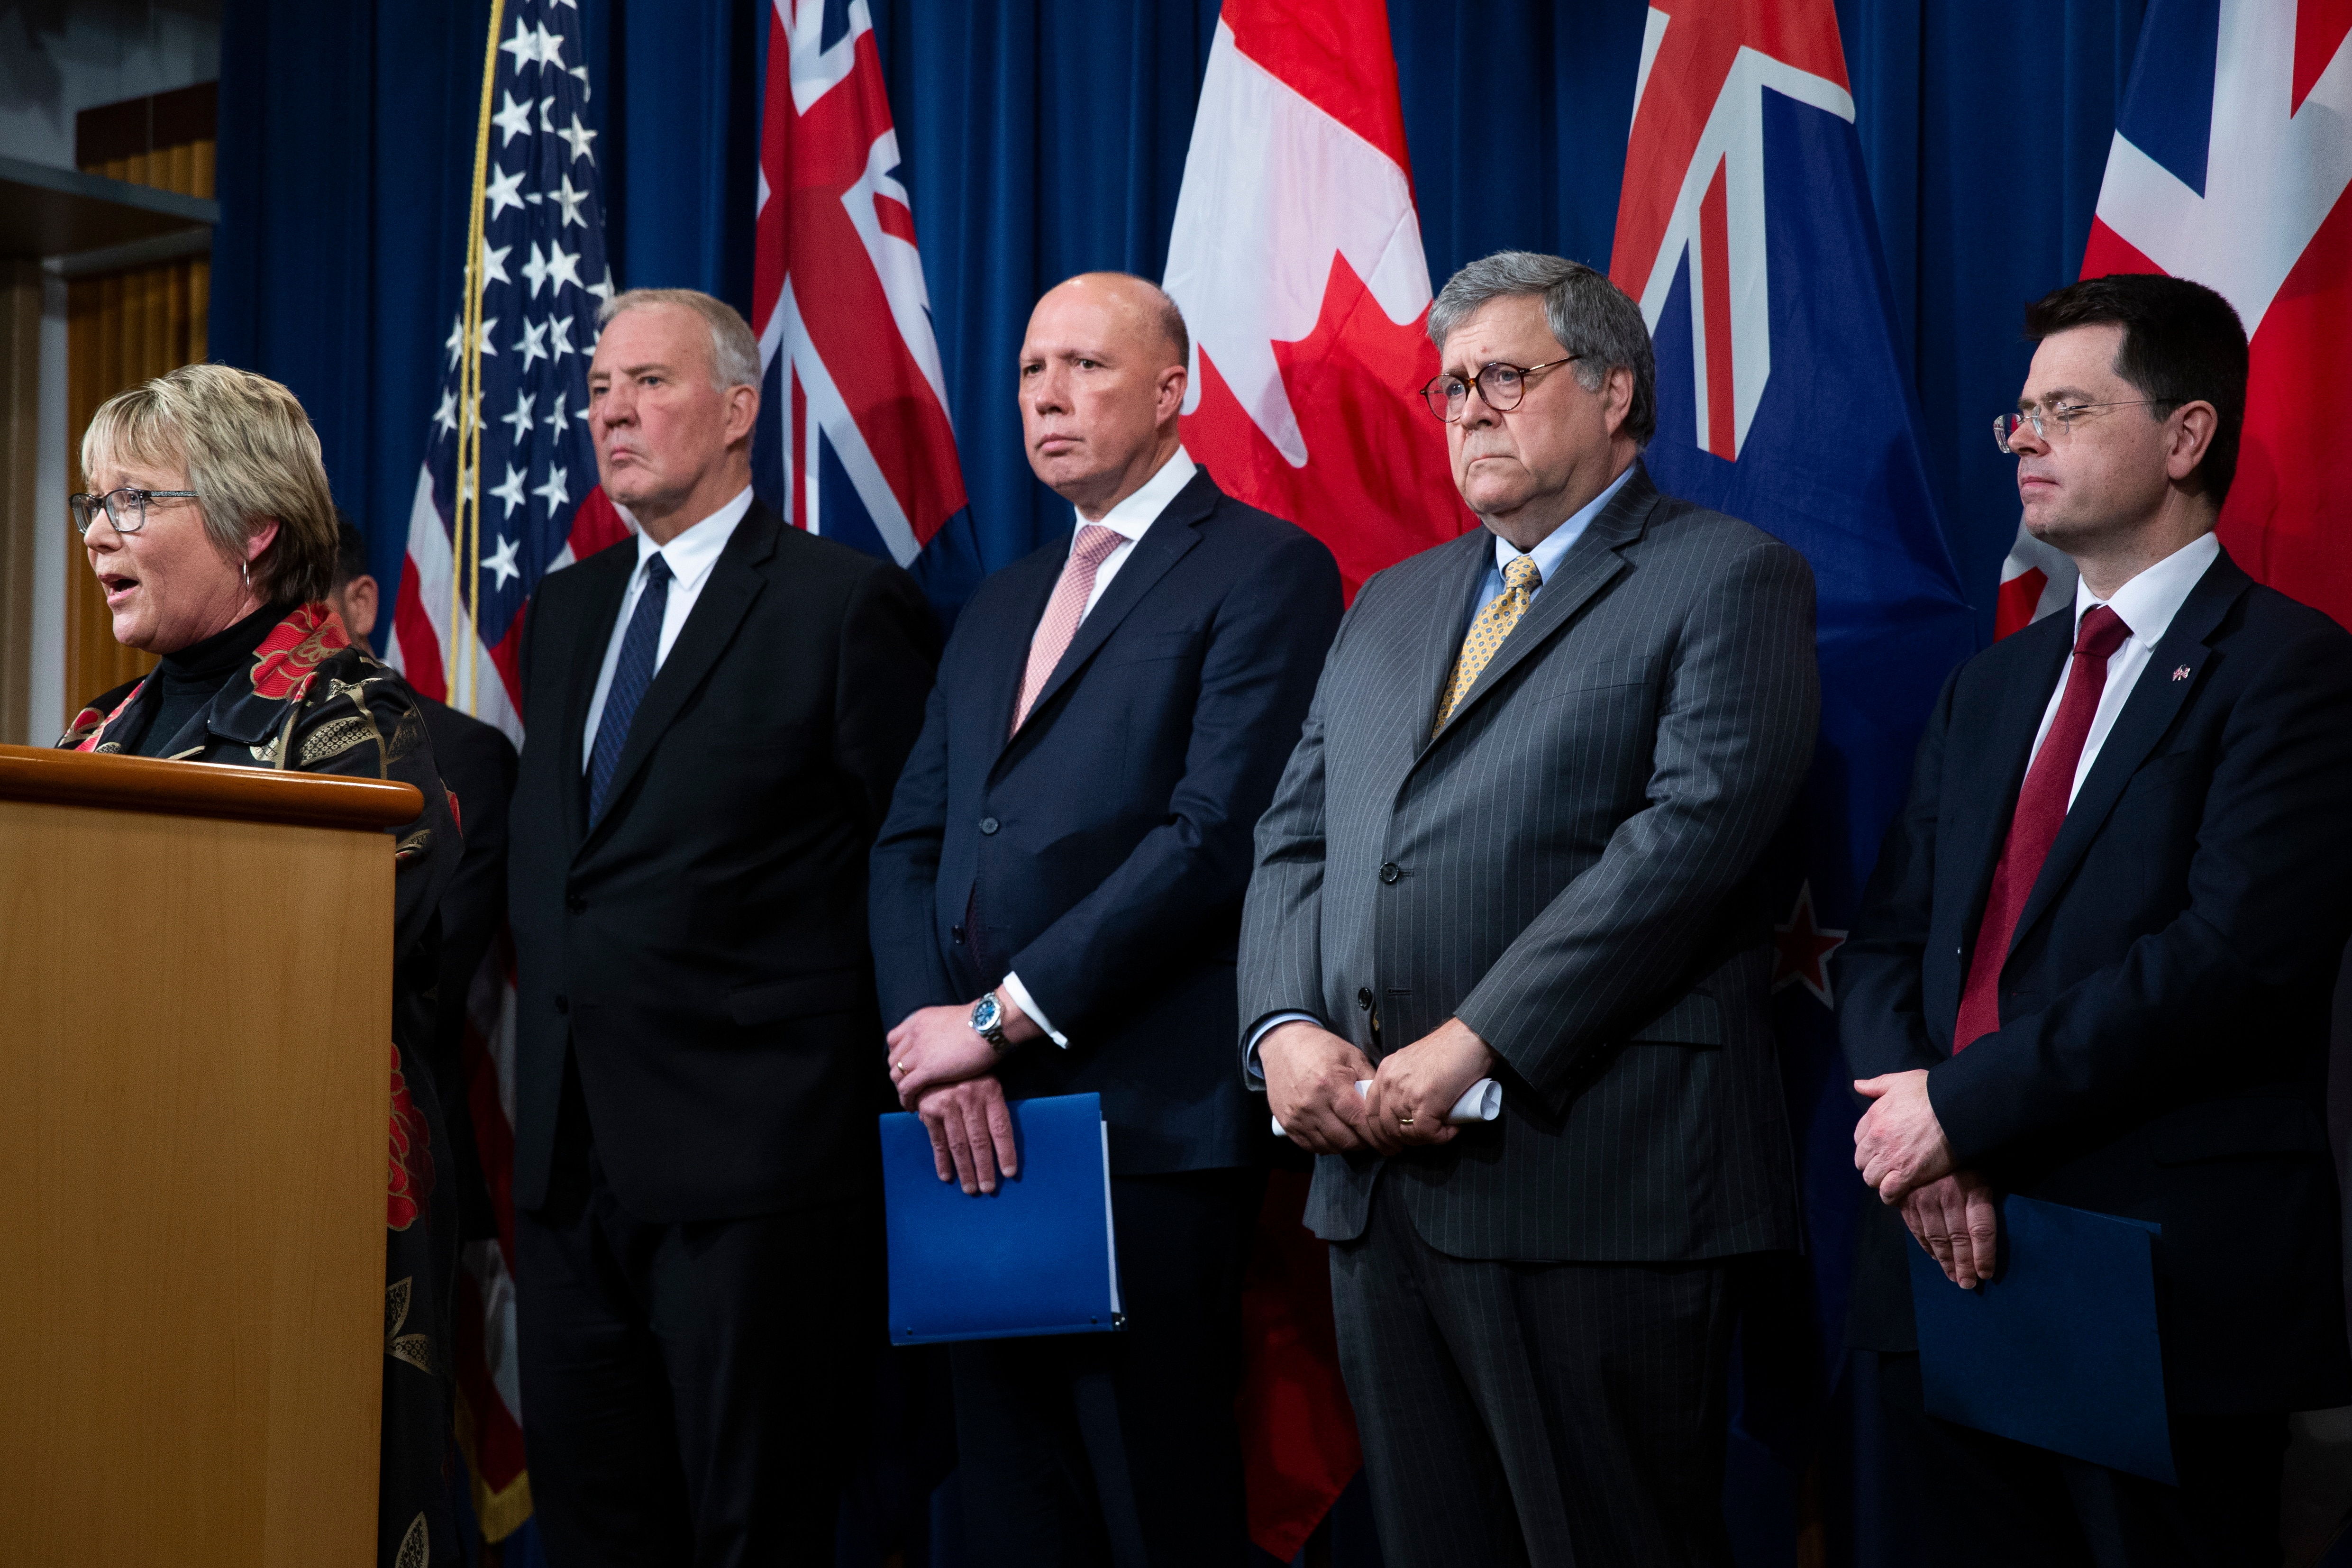 New Zealand Minister of Internal Affairs Tracey Martin speaks in Washington, in front of officials including William Barr and Pe